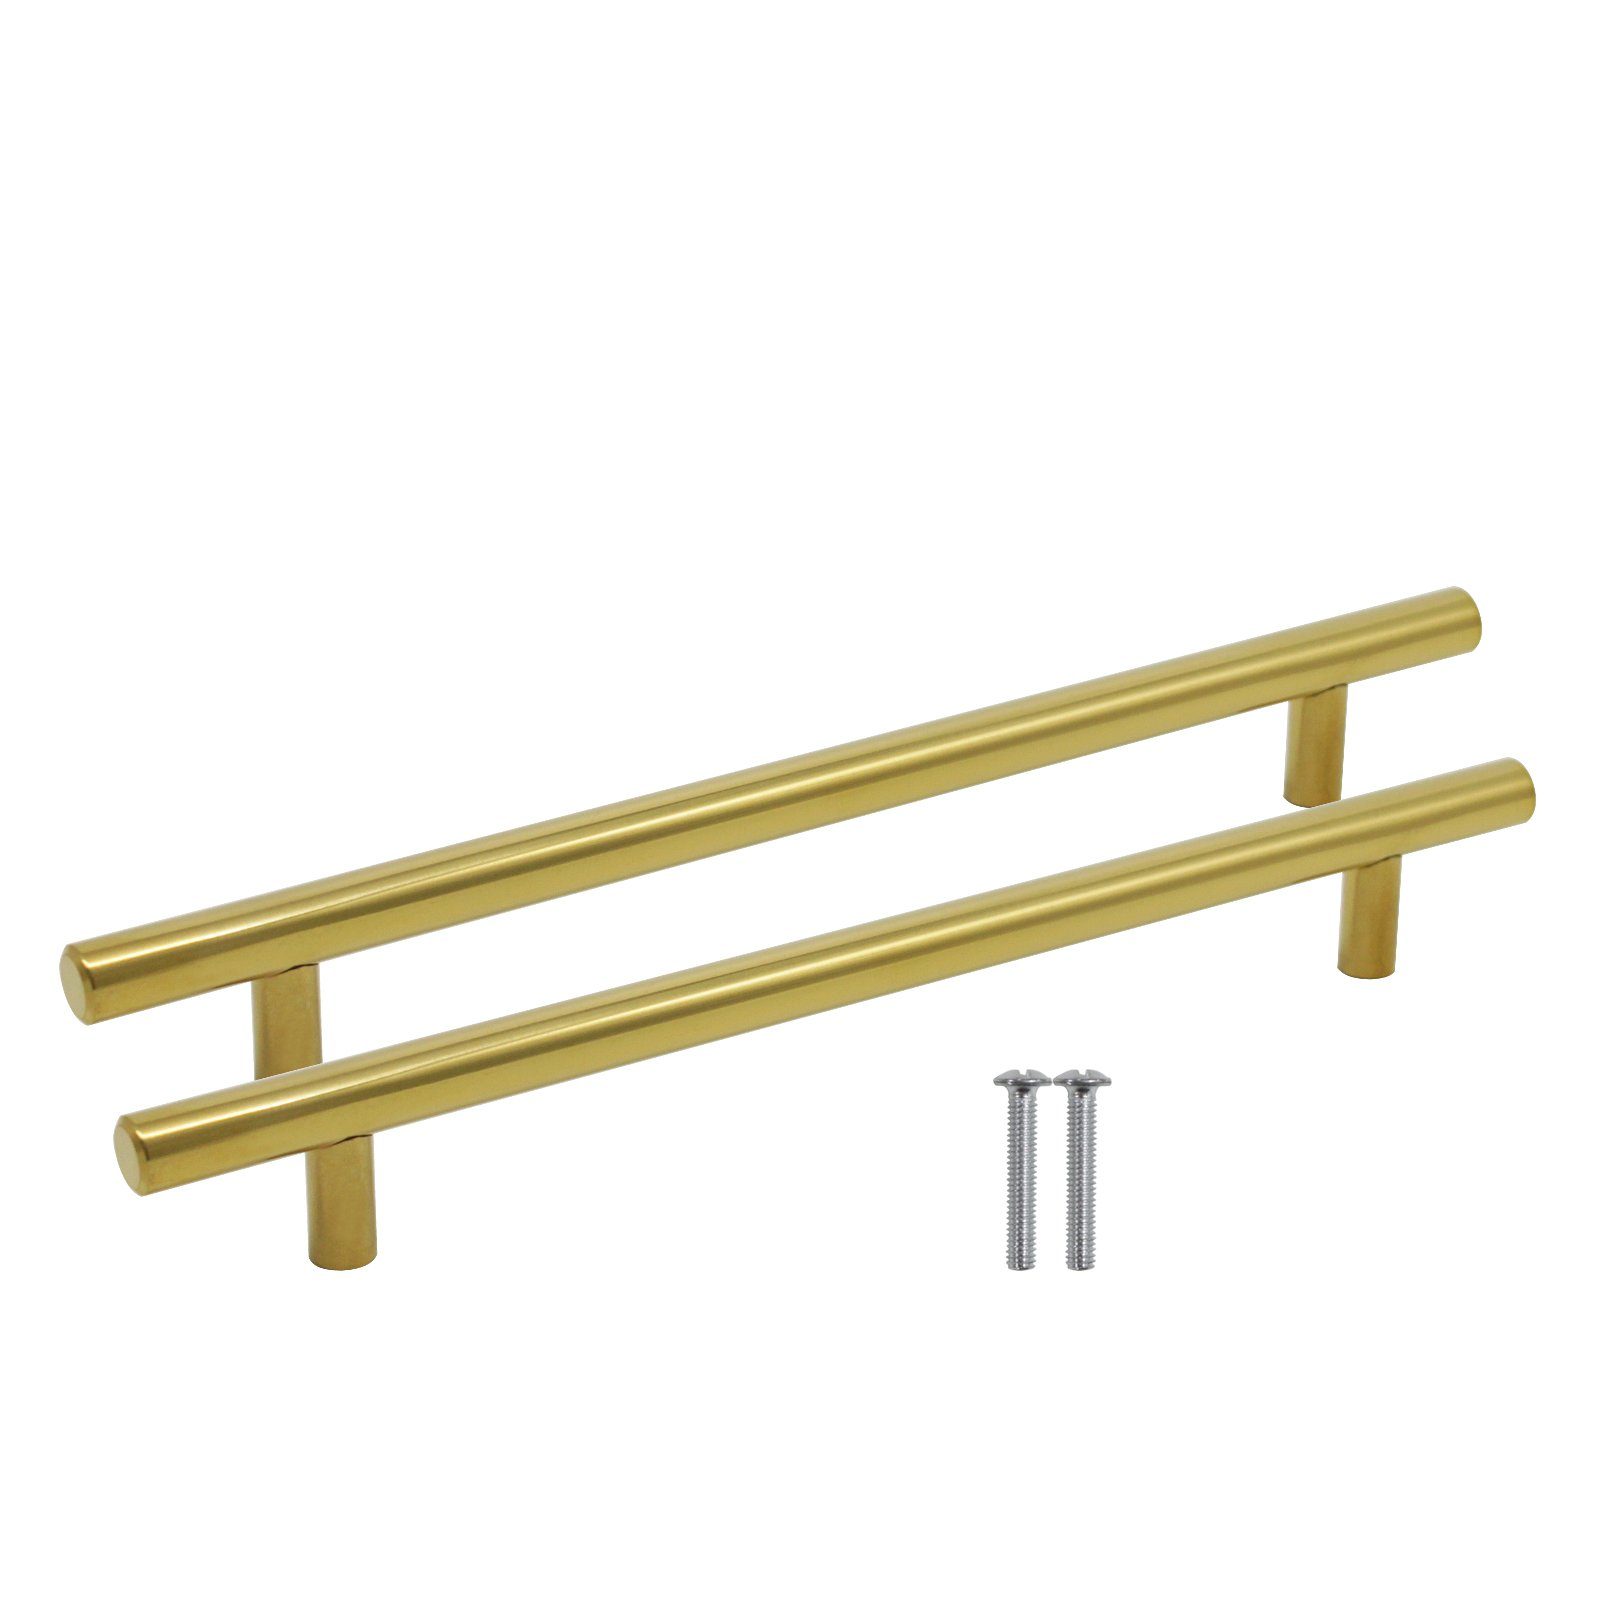 Goldentimehardware Brushed Brass 192mm(7-9/16'') Hole Distance Gold Color Stainless Steel kitchen Door Cabinet Handles T-bar Drawer Cupboard Pull Knob 100 Pack